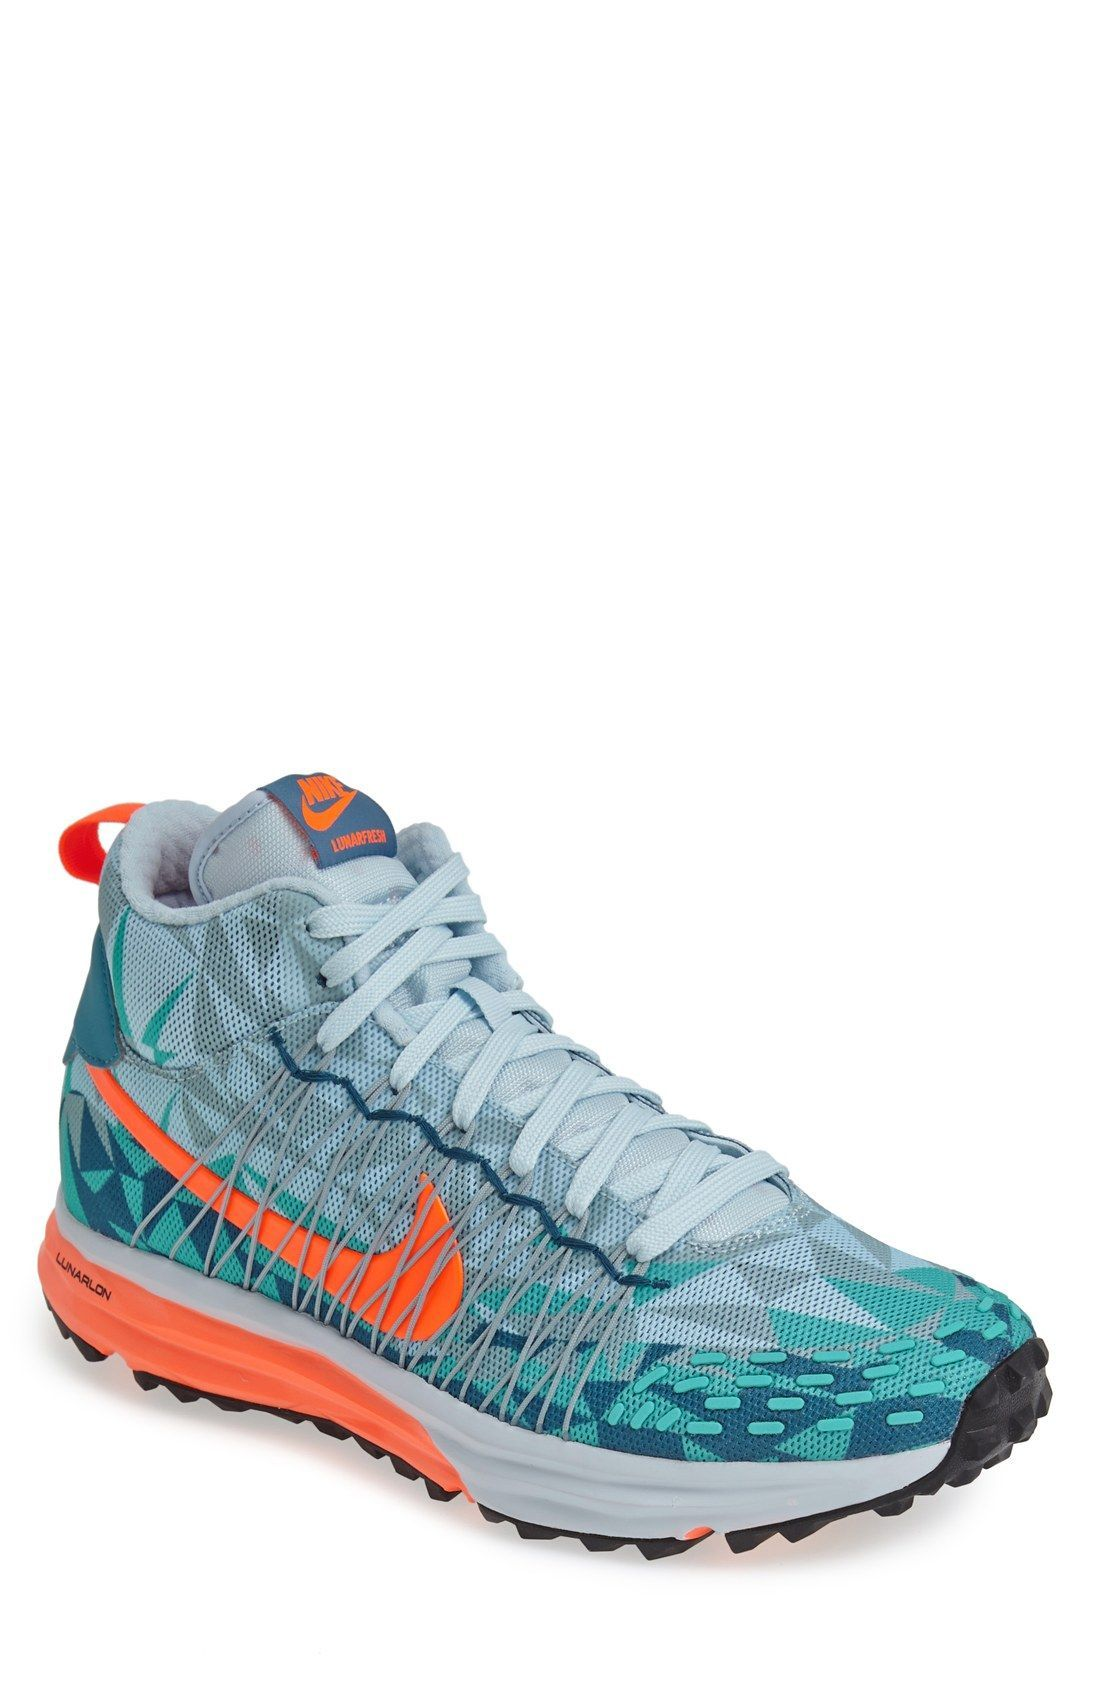 online retailer 843c0 58c80 These Nike  Lunarfresh  water resistant sneakers are the perfect kicks for  fall and winter.